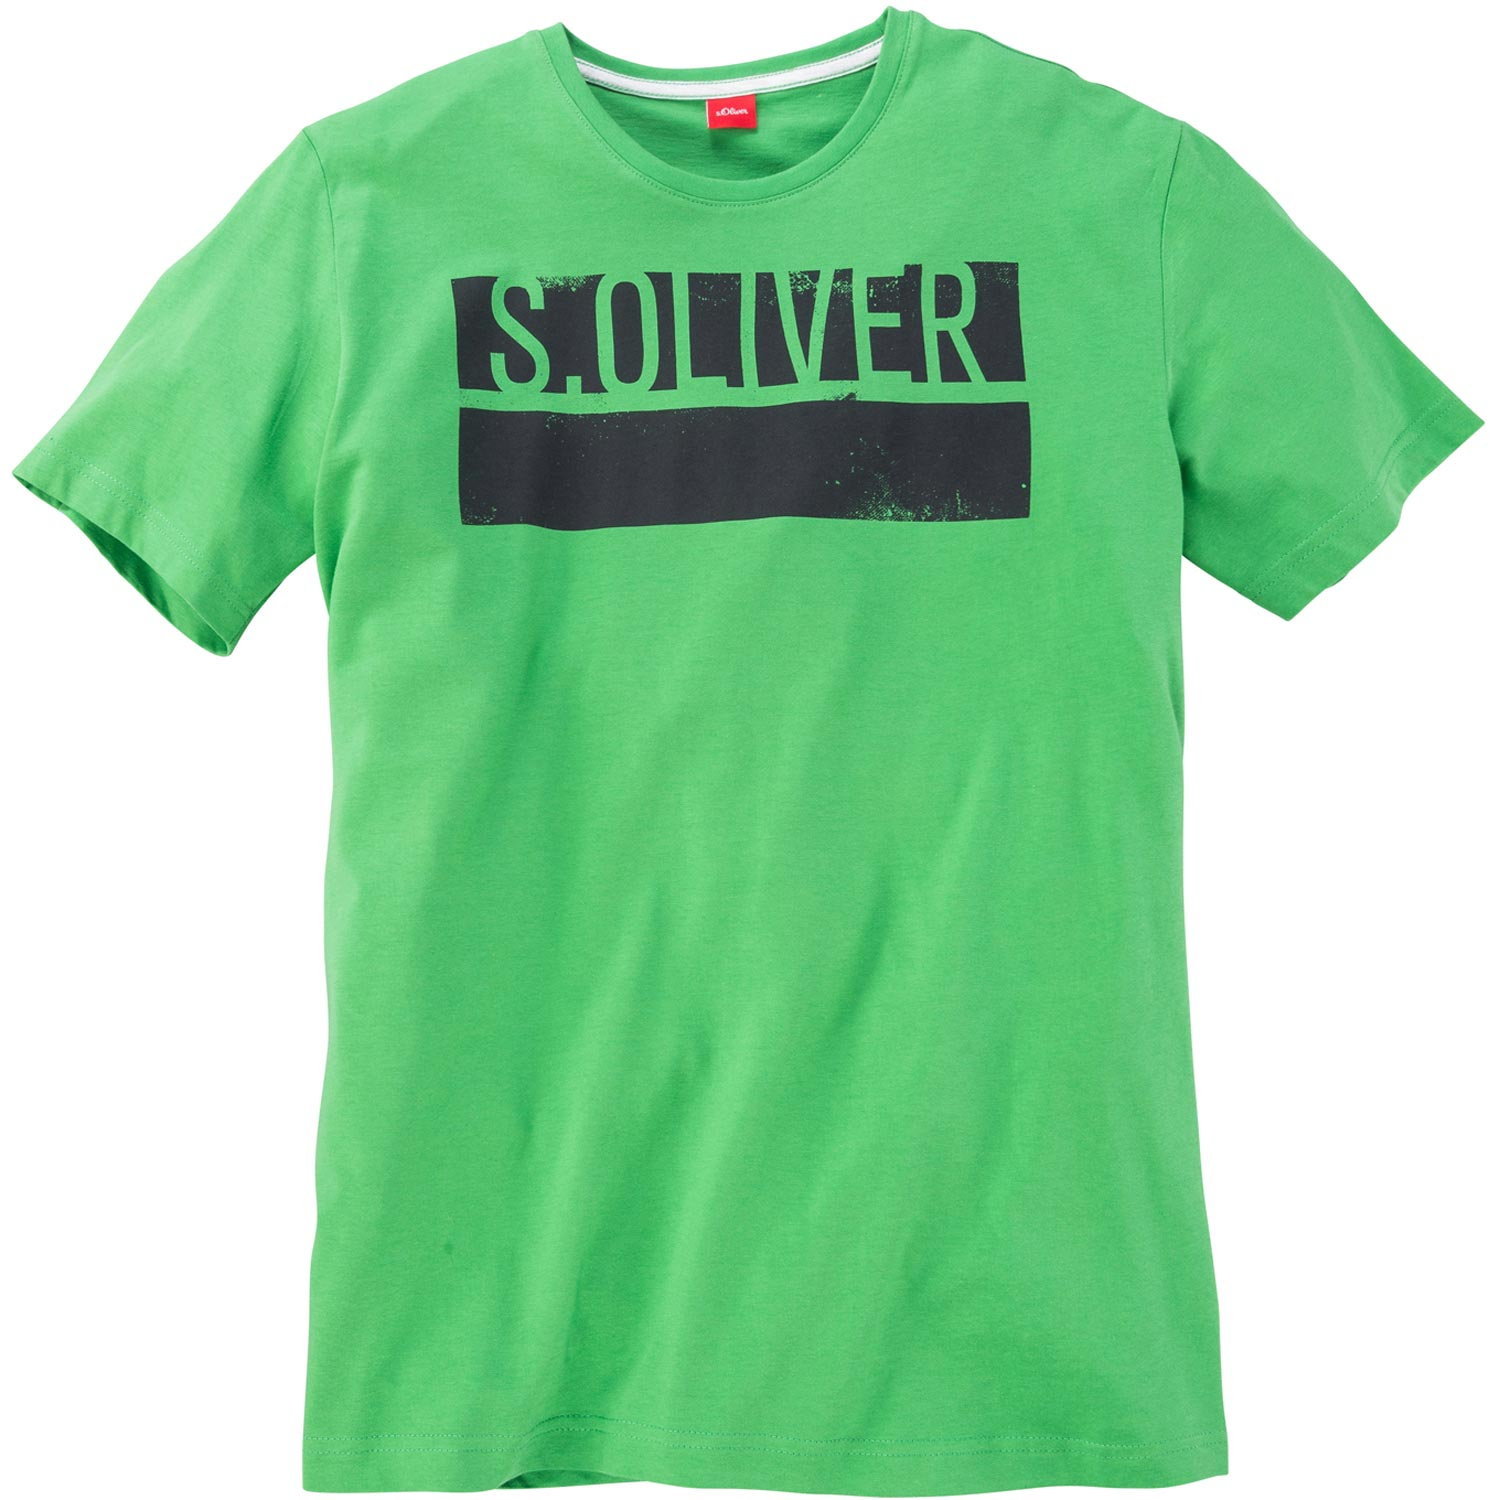 S oliver t shirt mit logo print kurzarm pfundskerl xxl for T shirt with logo printed